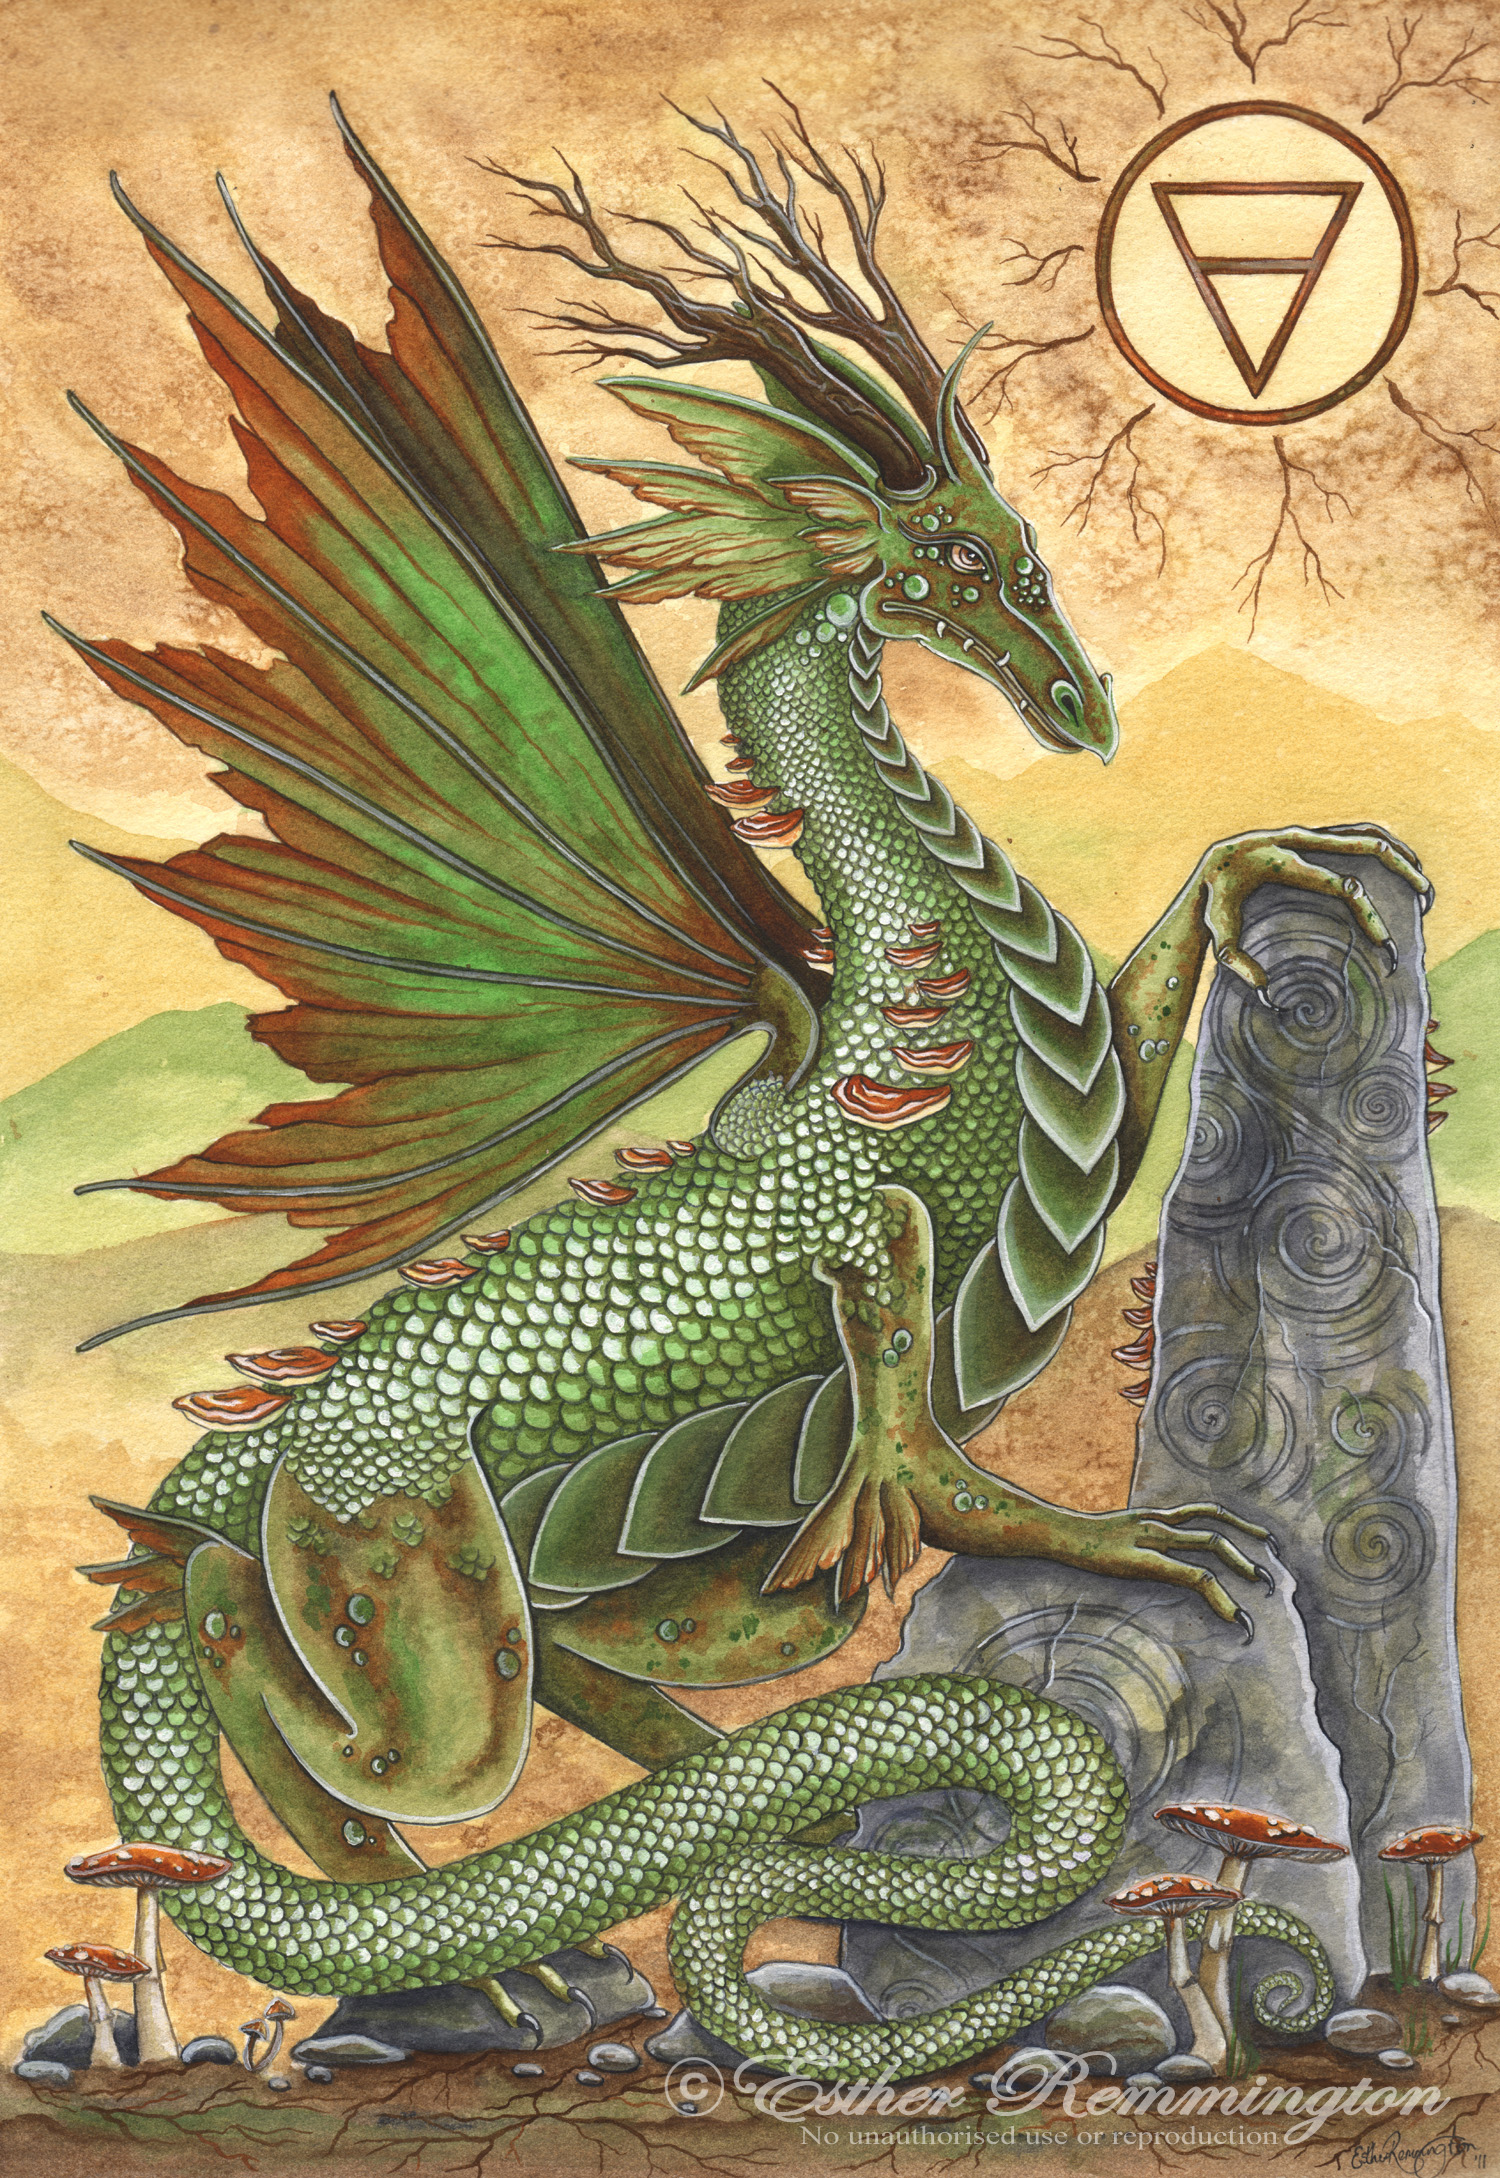 Earth Dragon - 2011